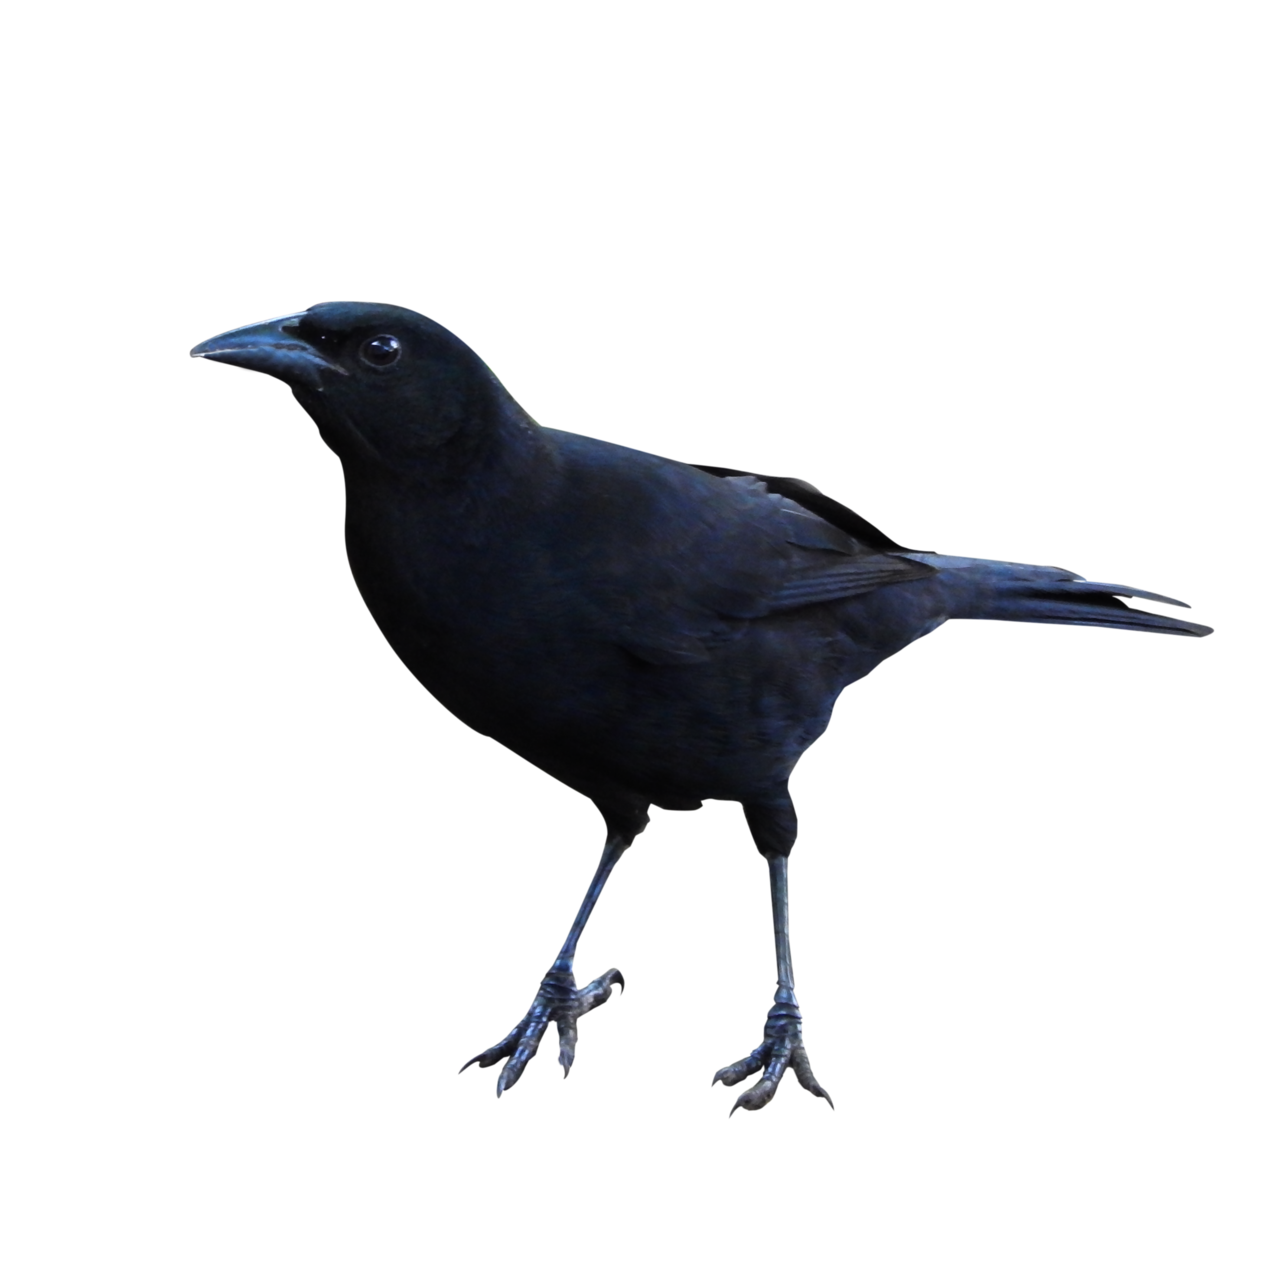 Raven PNG - 21285